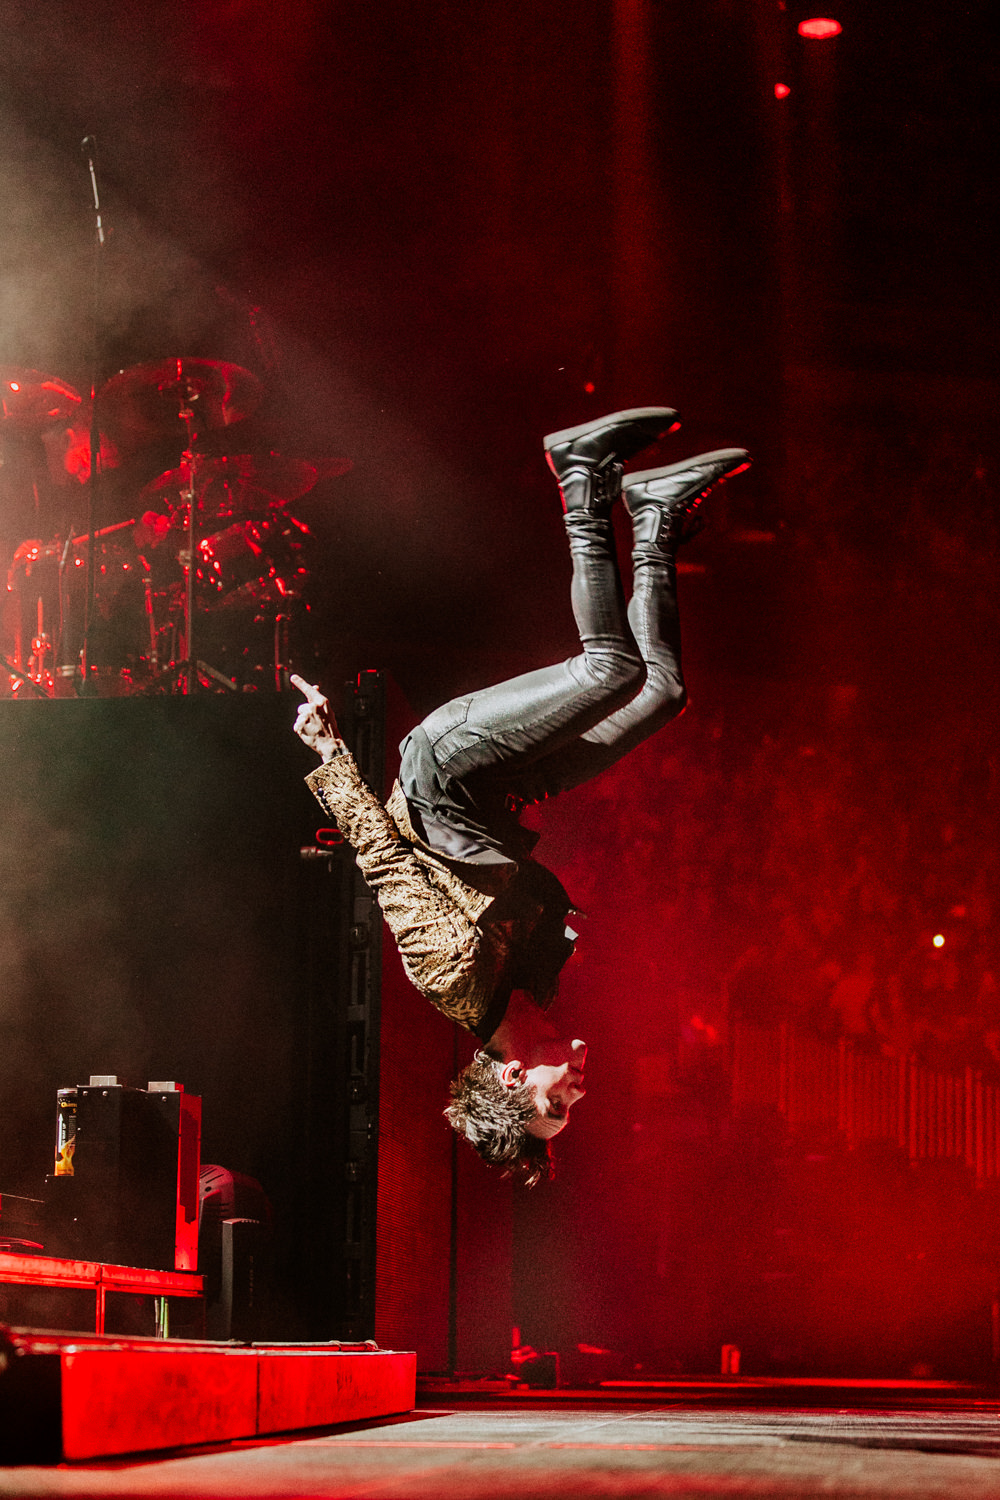 brendon-urie-back-flip-patd-panic-at-the-disco-AnnaLeeMedia